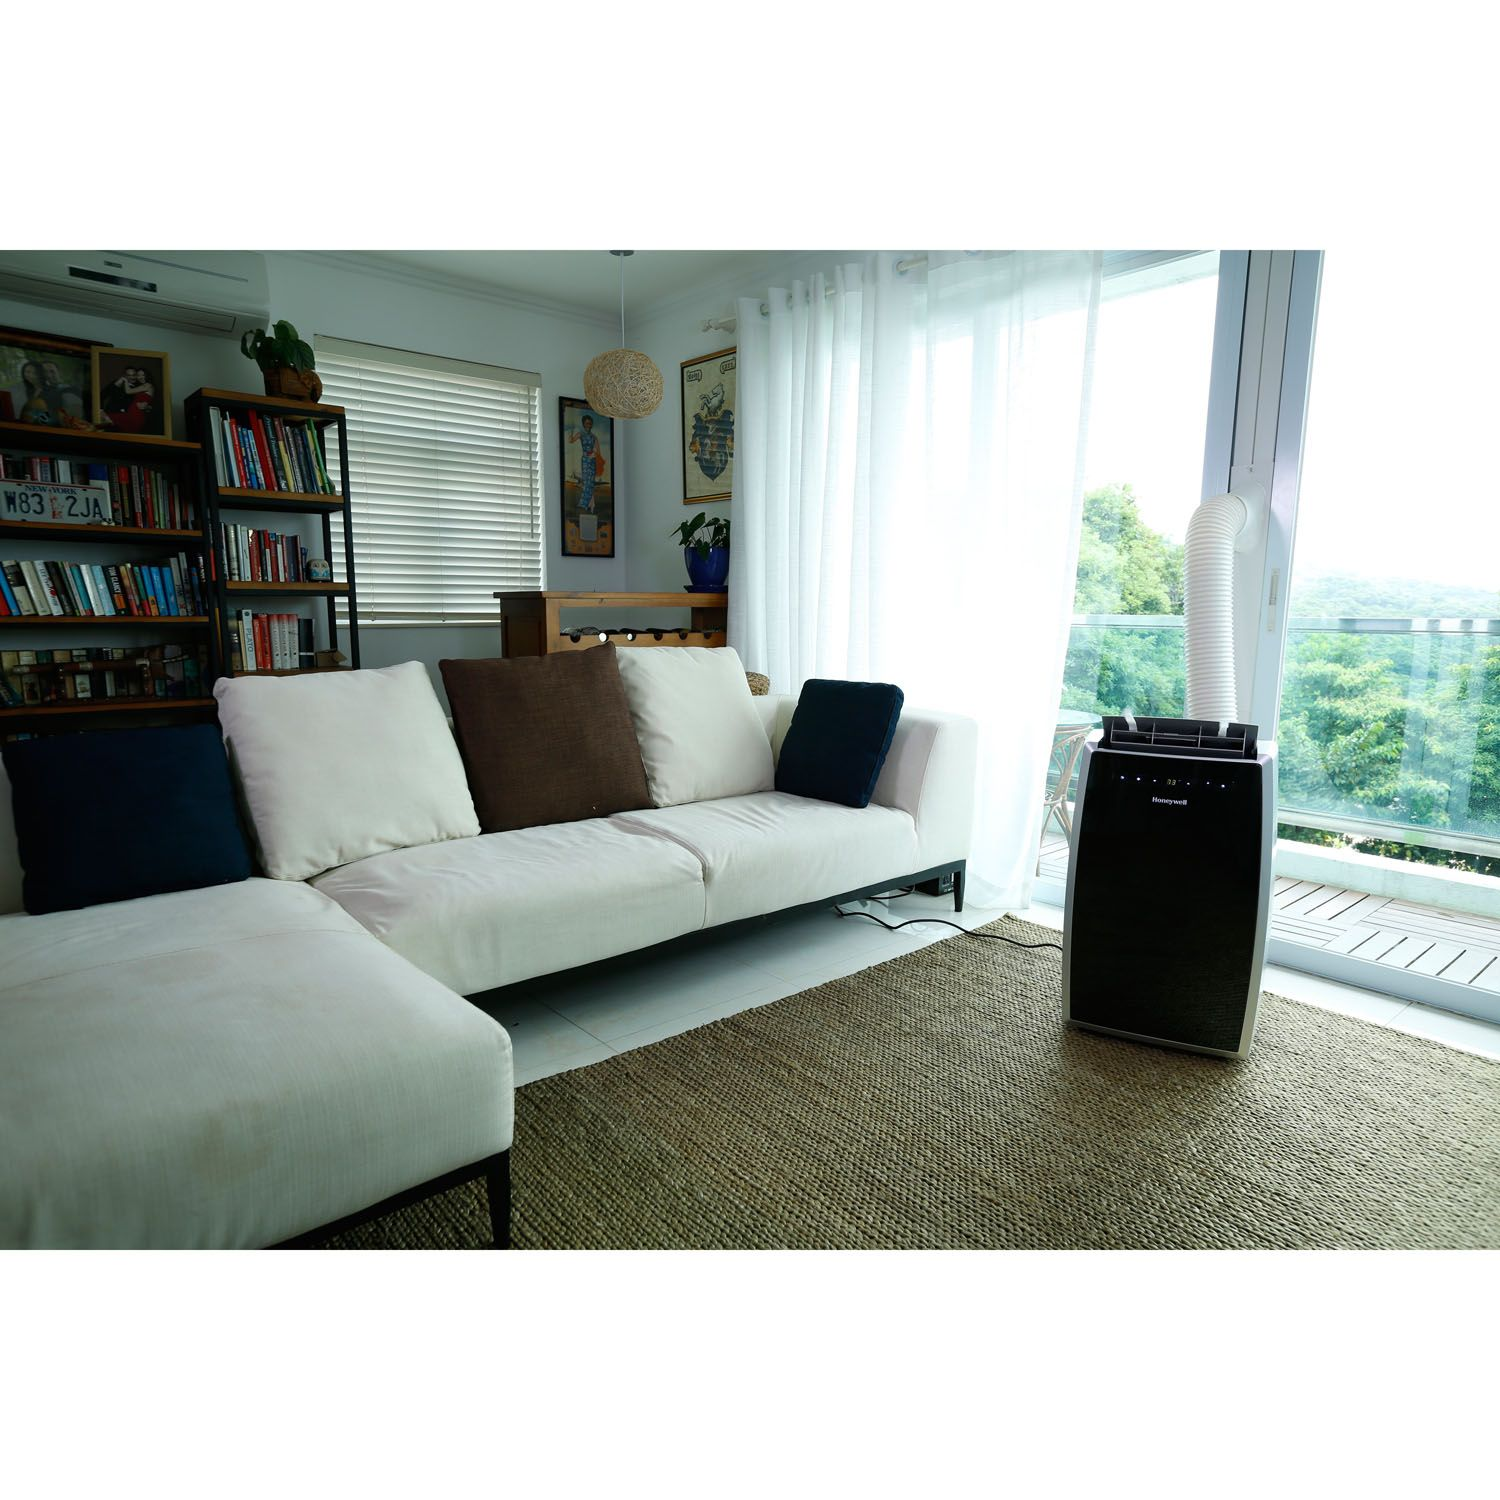 Portable Air Conditioner with Dehumidifier & Fan for Rooms